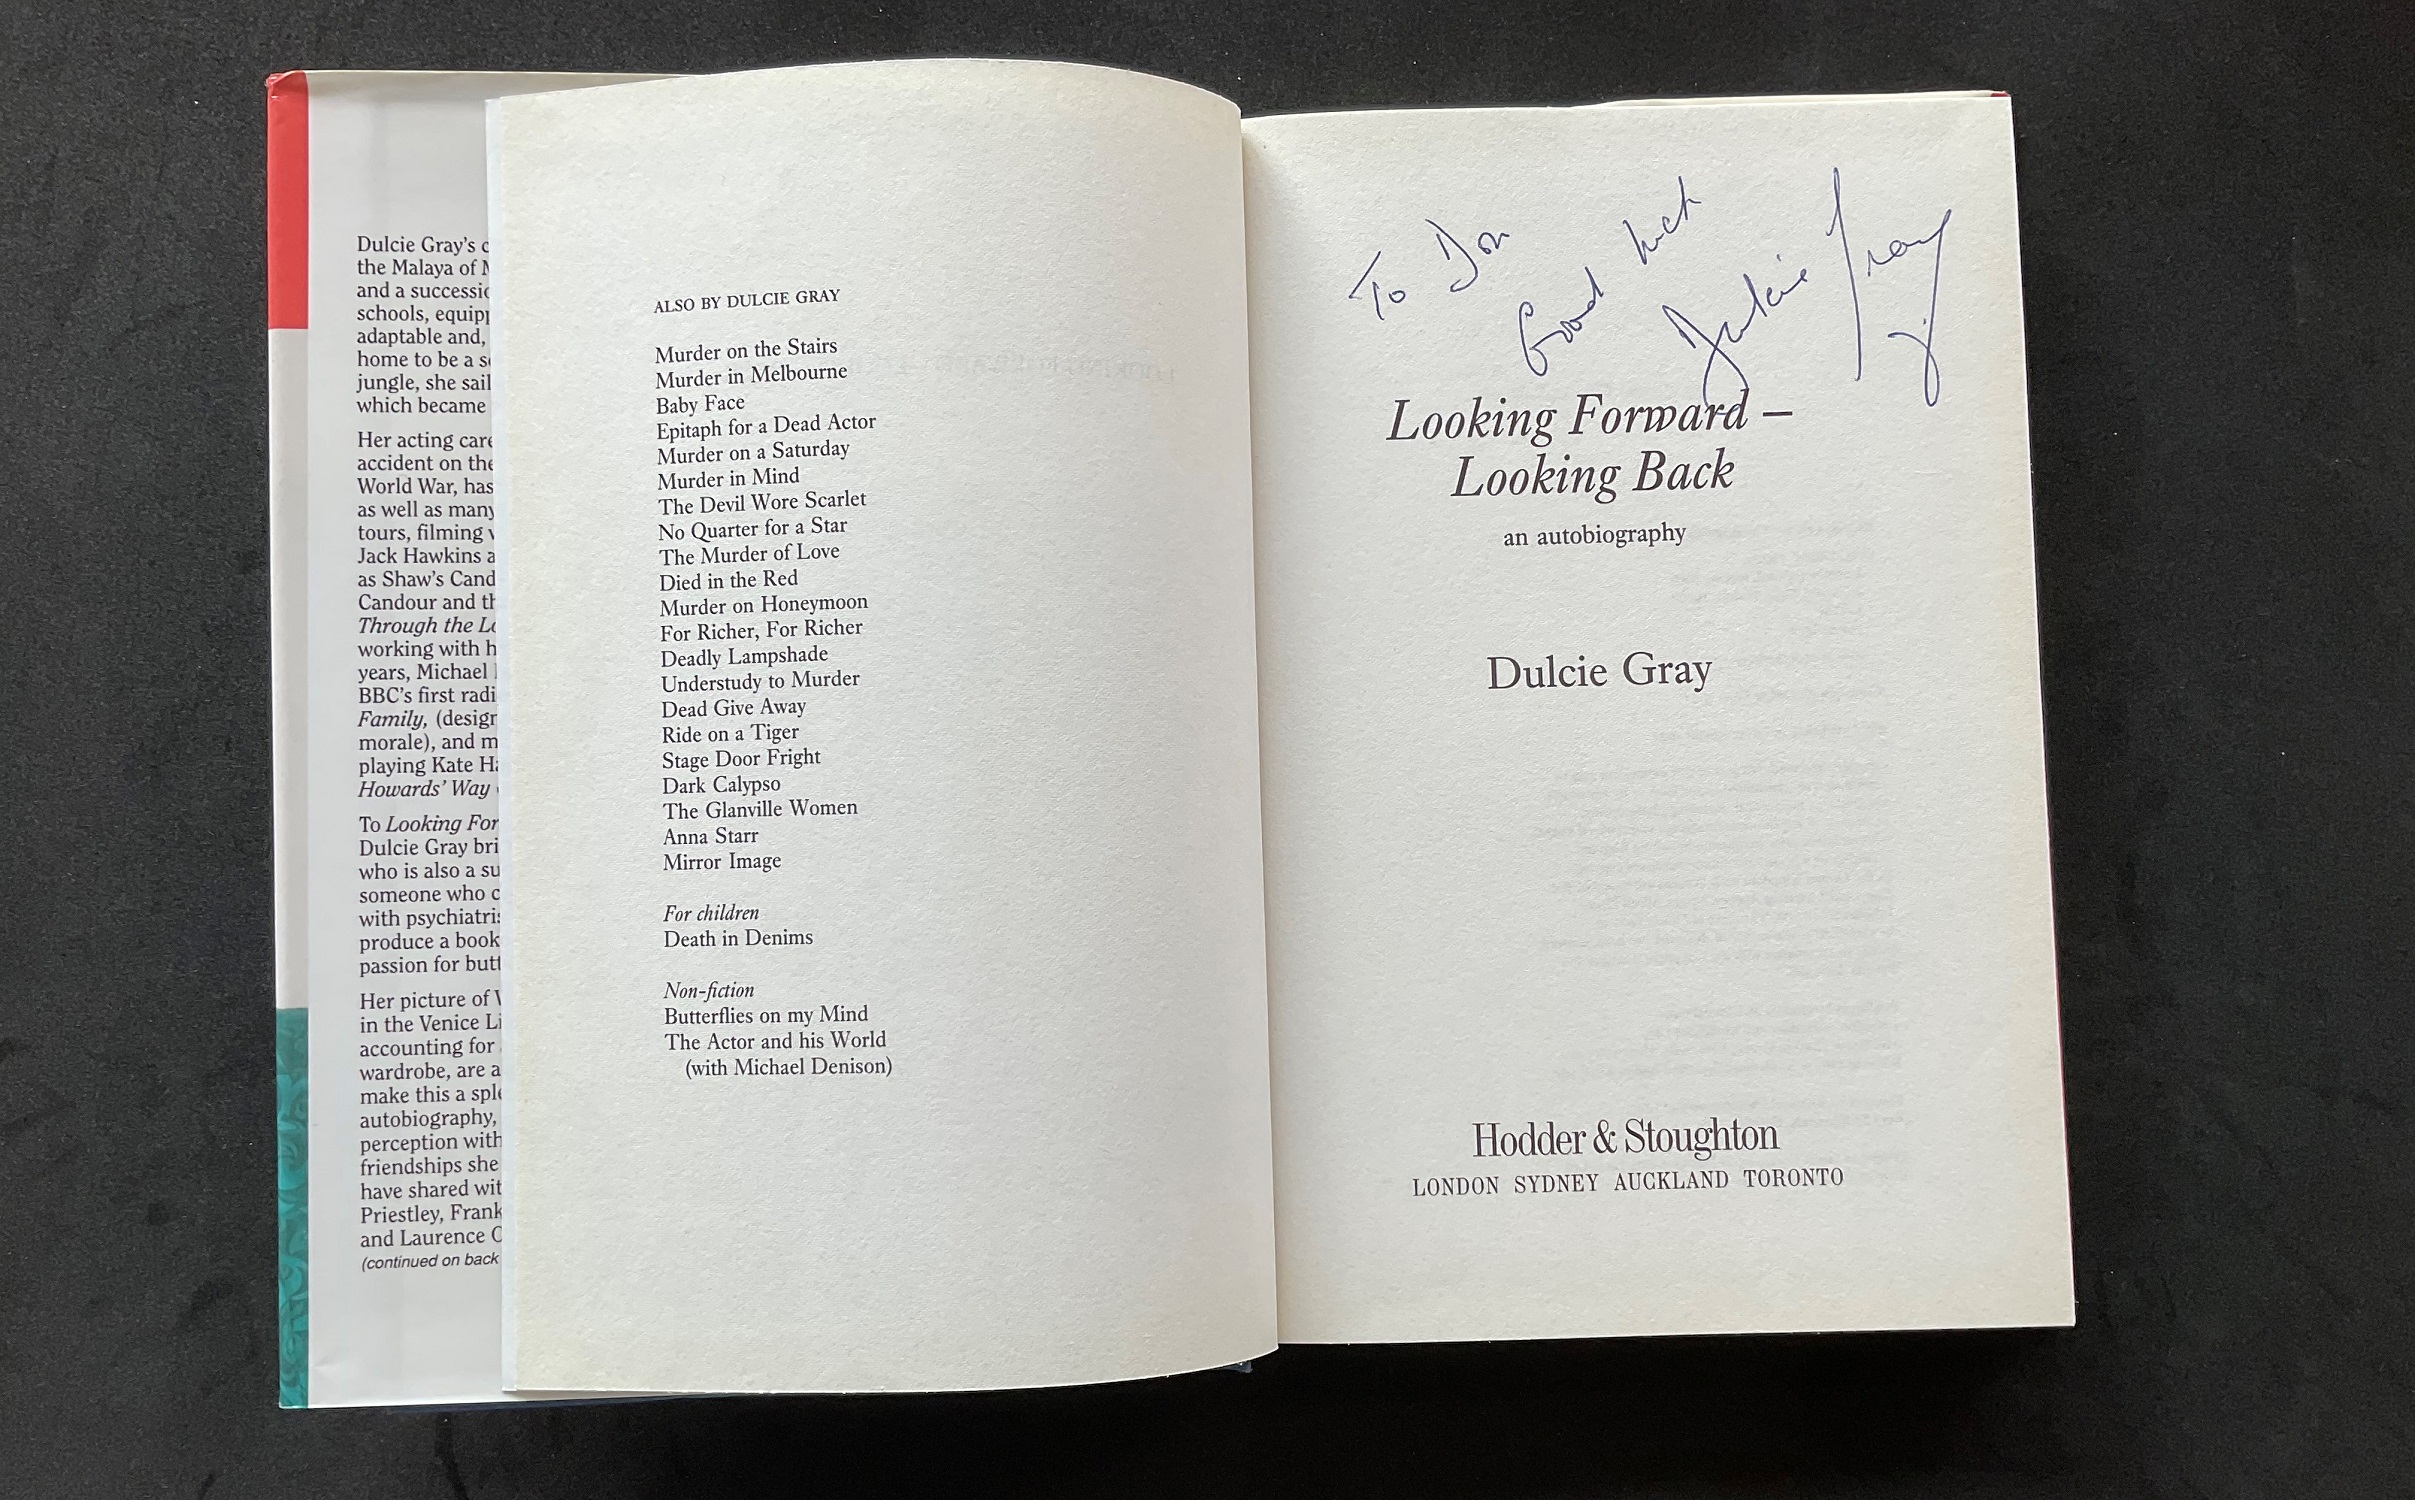 Actress Dulcie Grays autobiography Looking Forward, Looking Back, signed and dedicated to Don. - Image 2 of 3